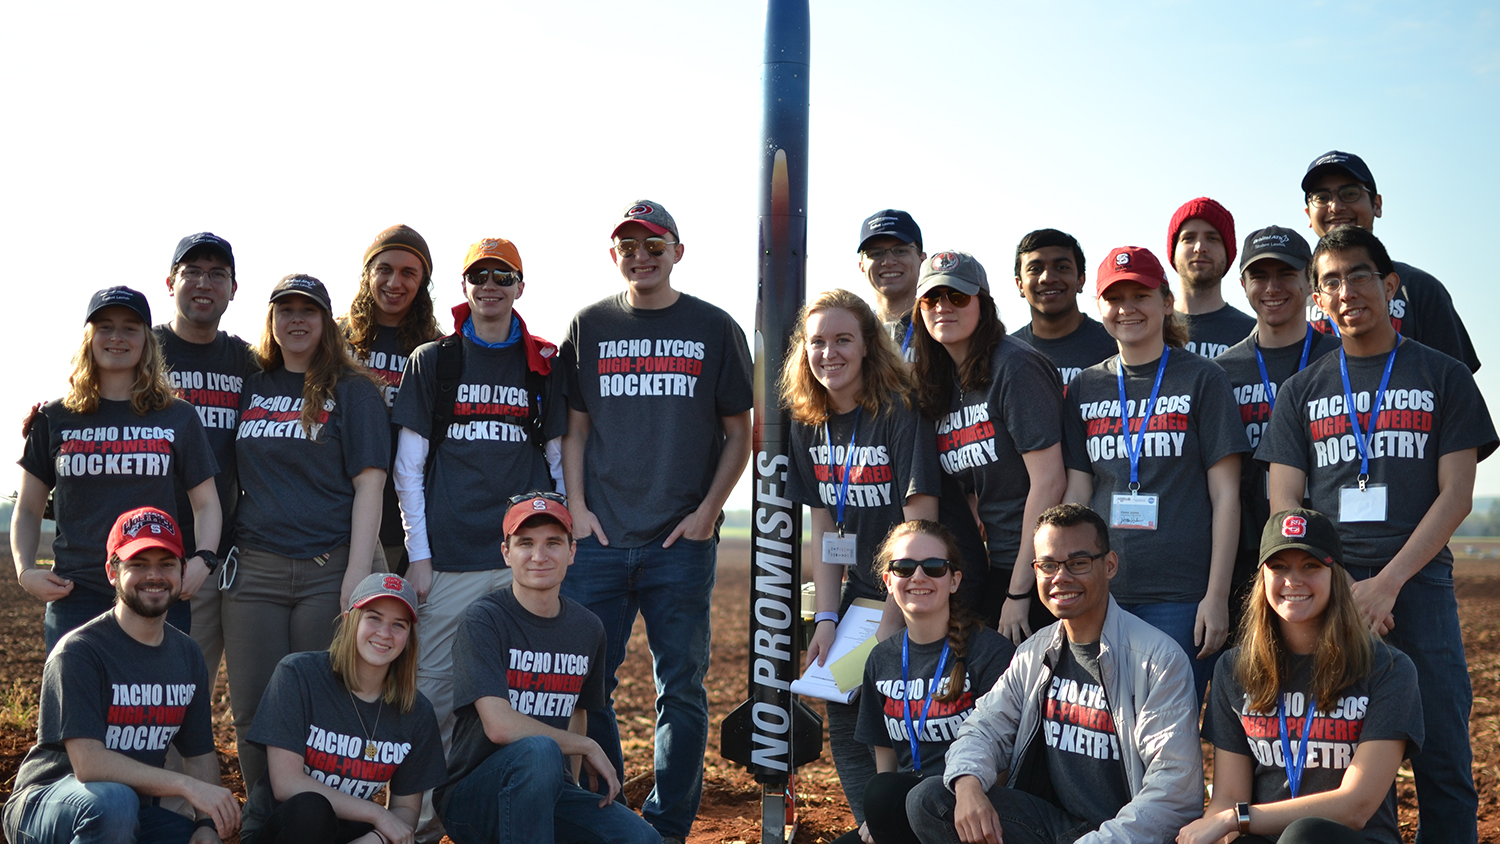 high-powdered rocketry club pre-launch team